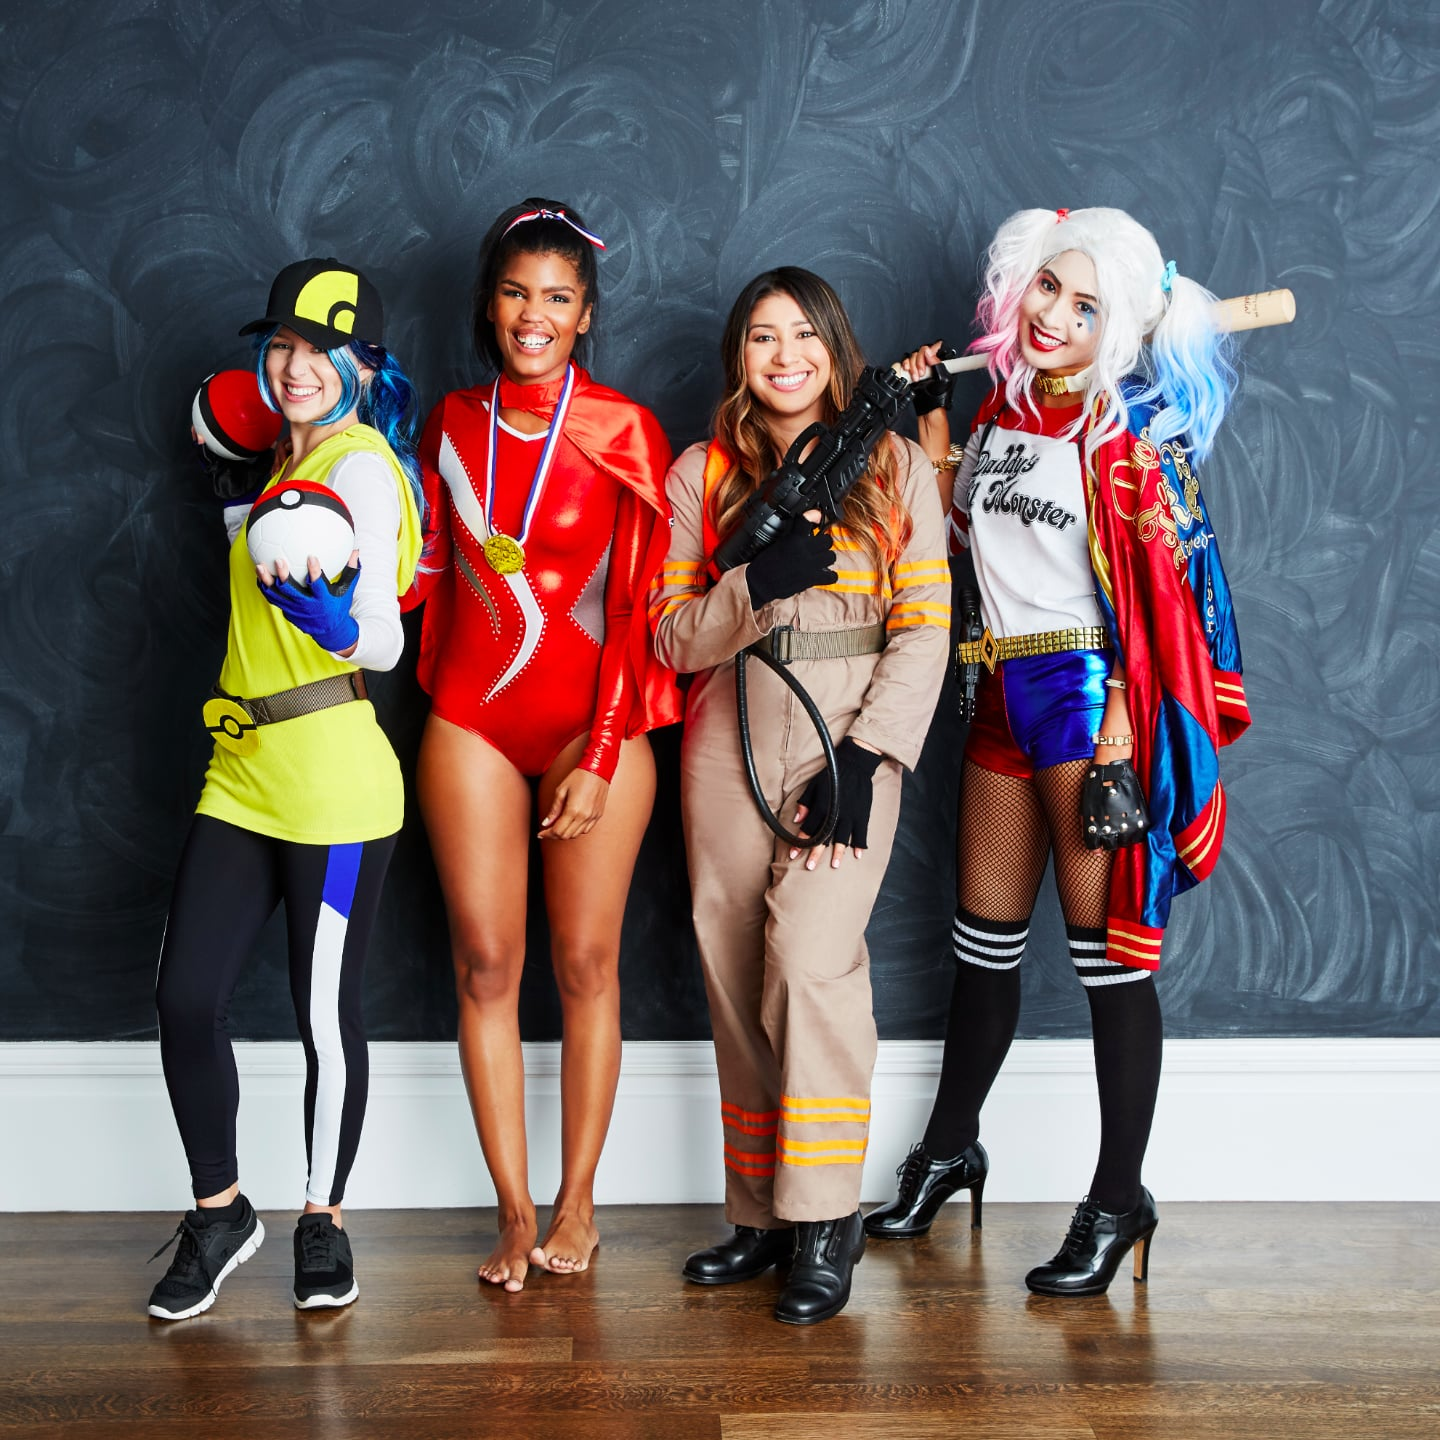 sc 1 st  Popsugar & Most Popular Halloween Costumes of 2016 | POPSUGAR Celebrity